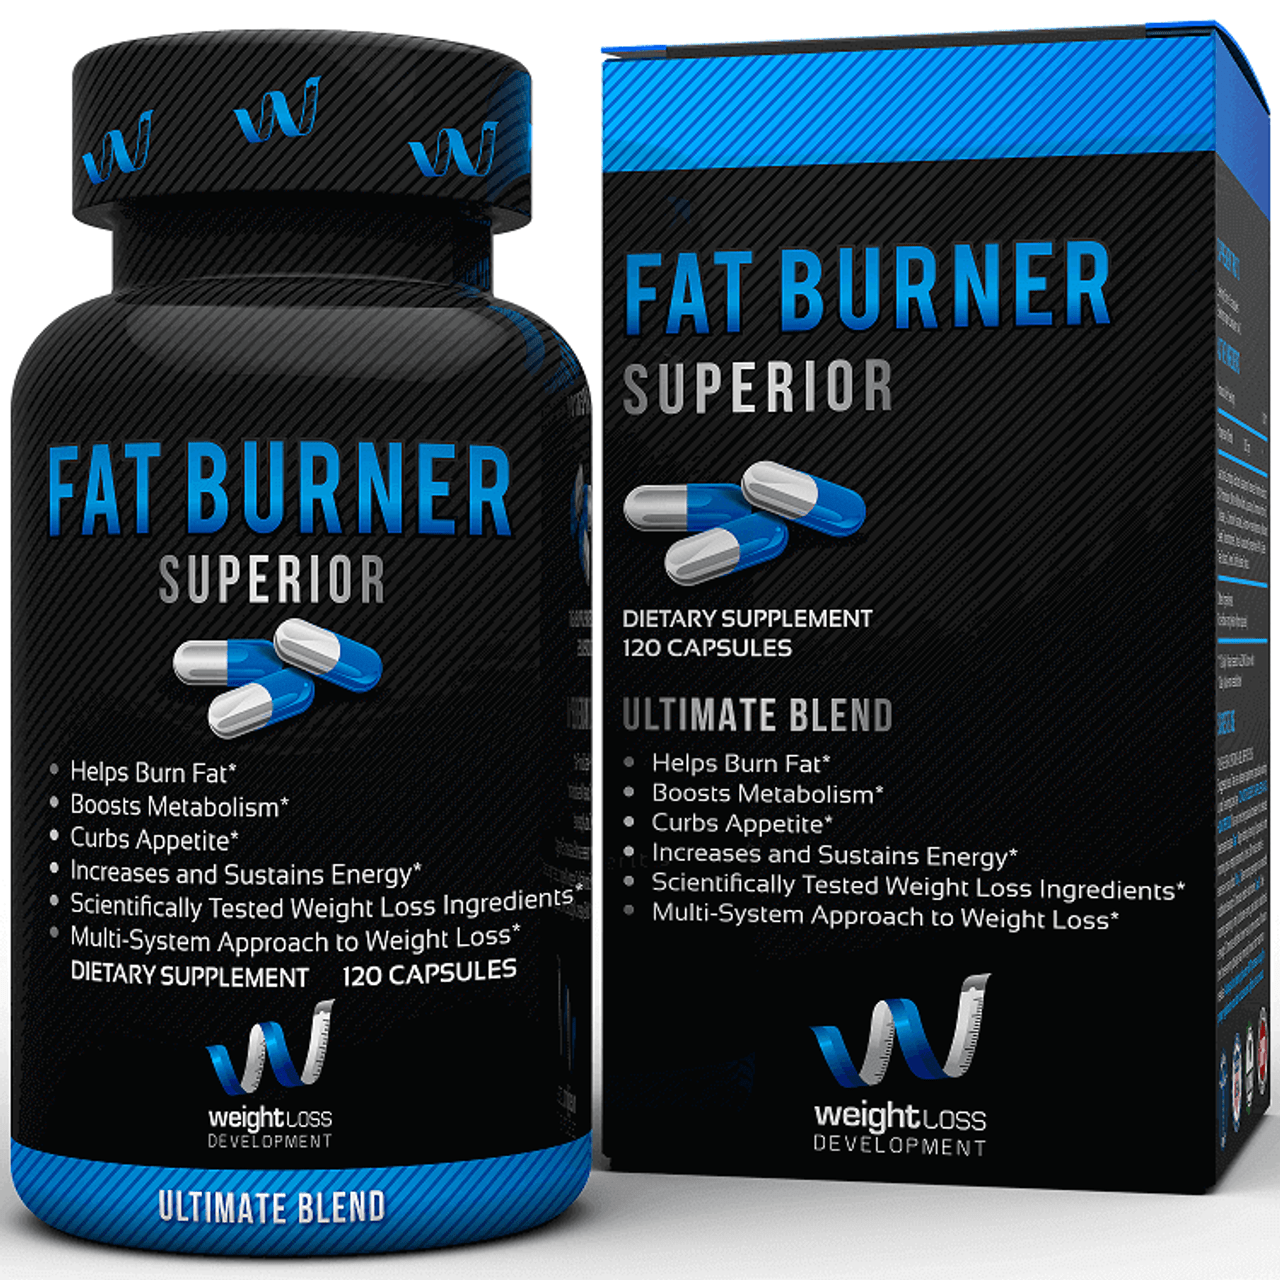 CLEARANCE Fat Burner Superior by Weight Loss Development 120ct